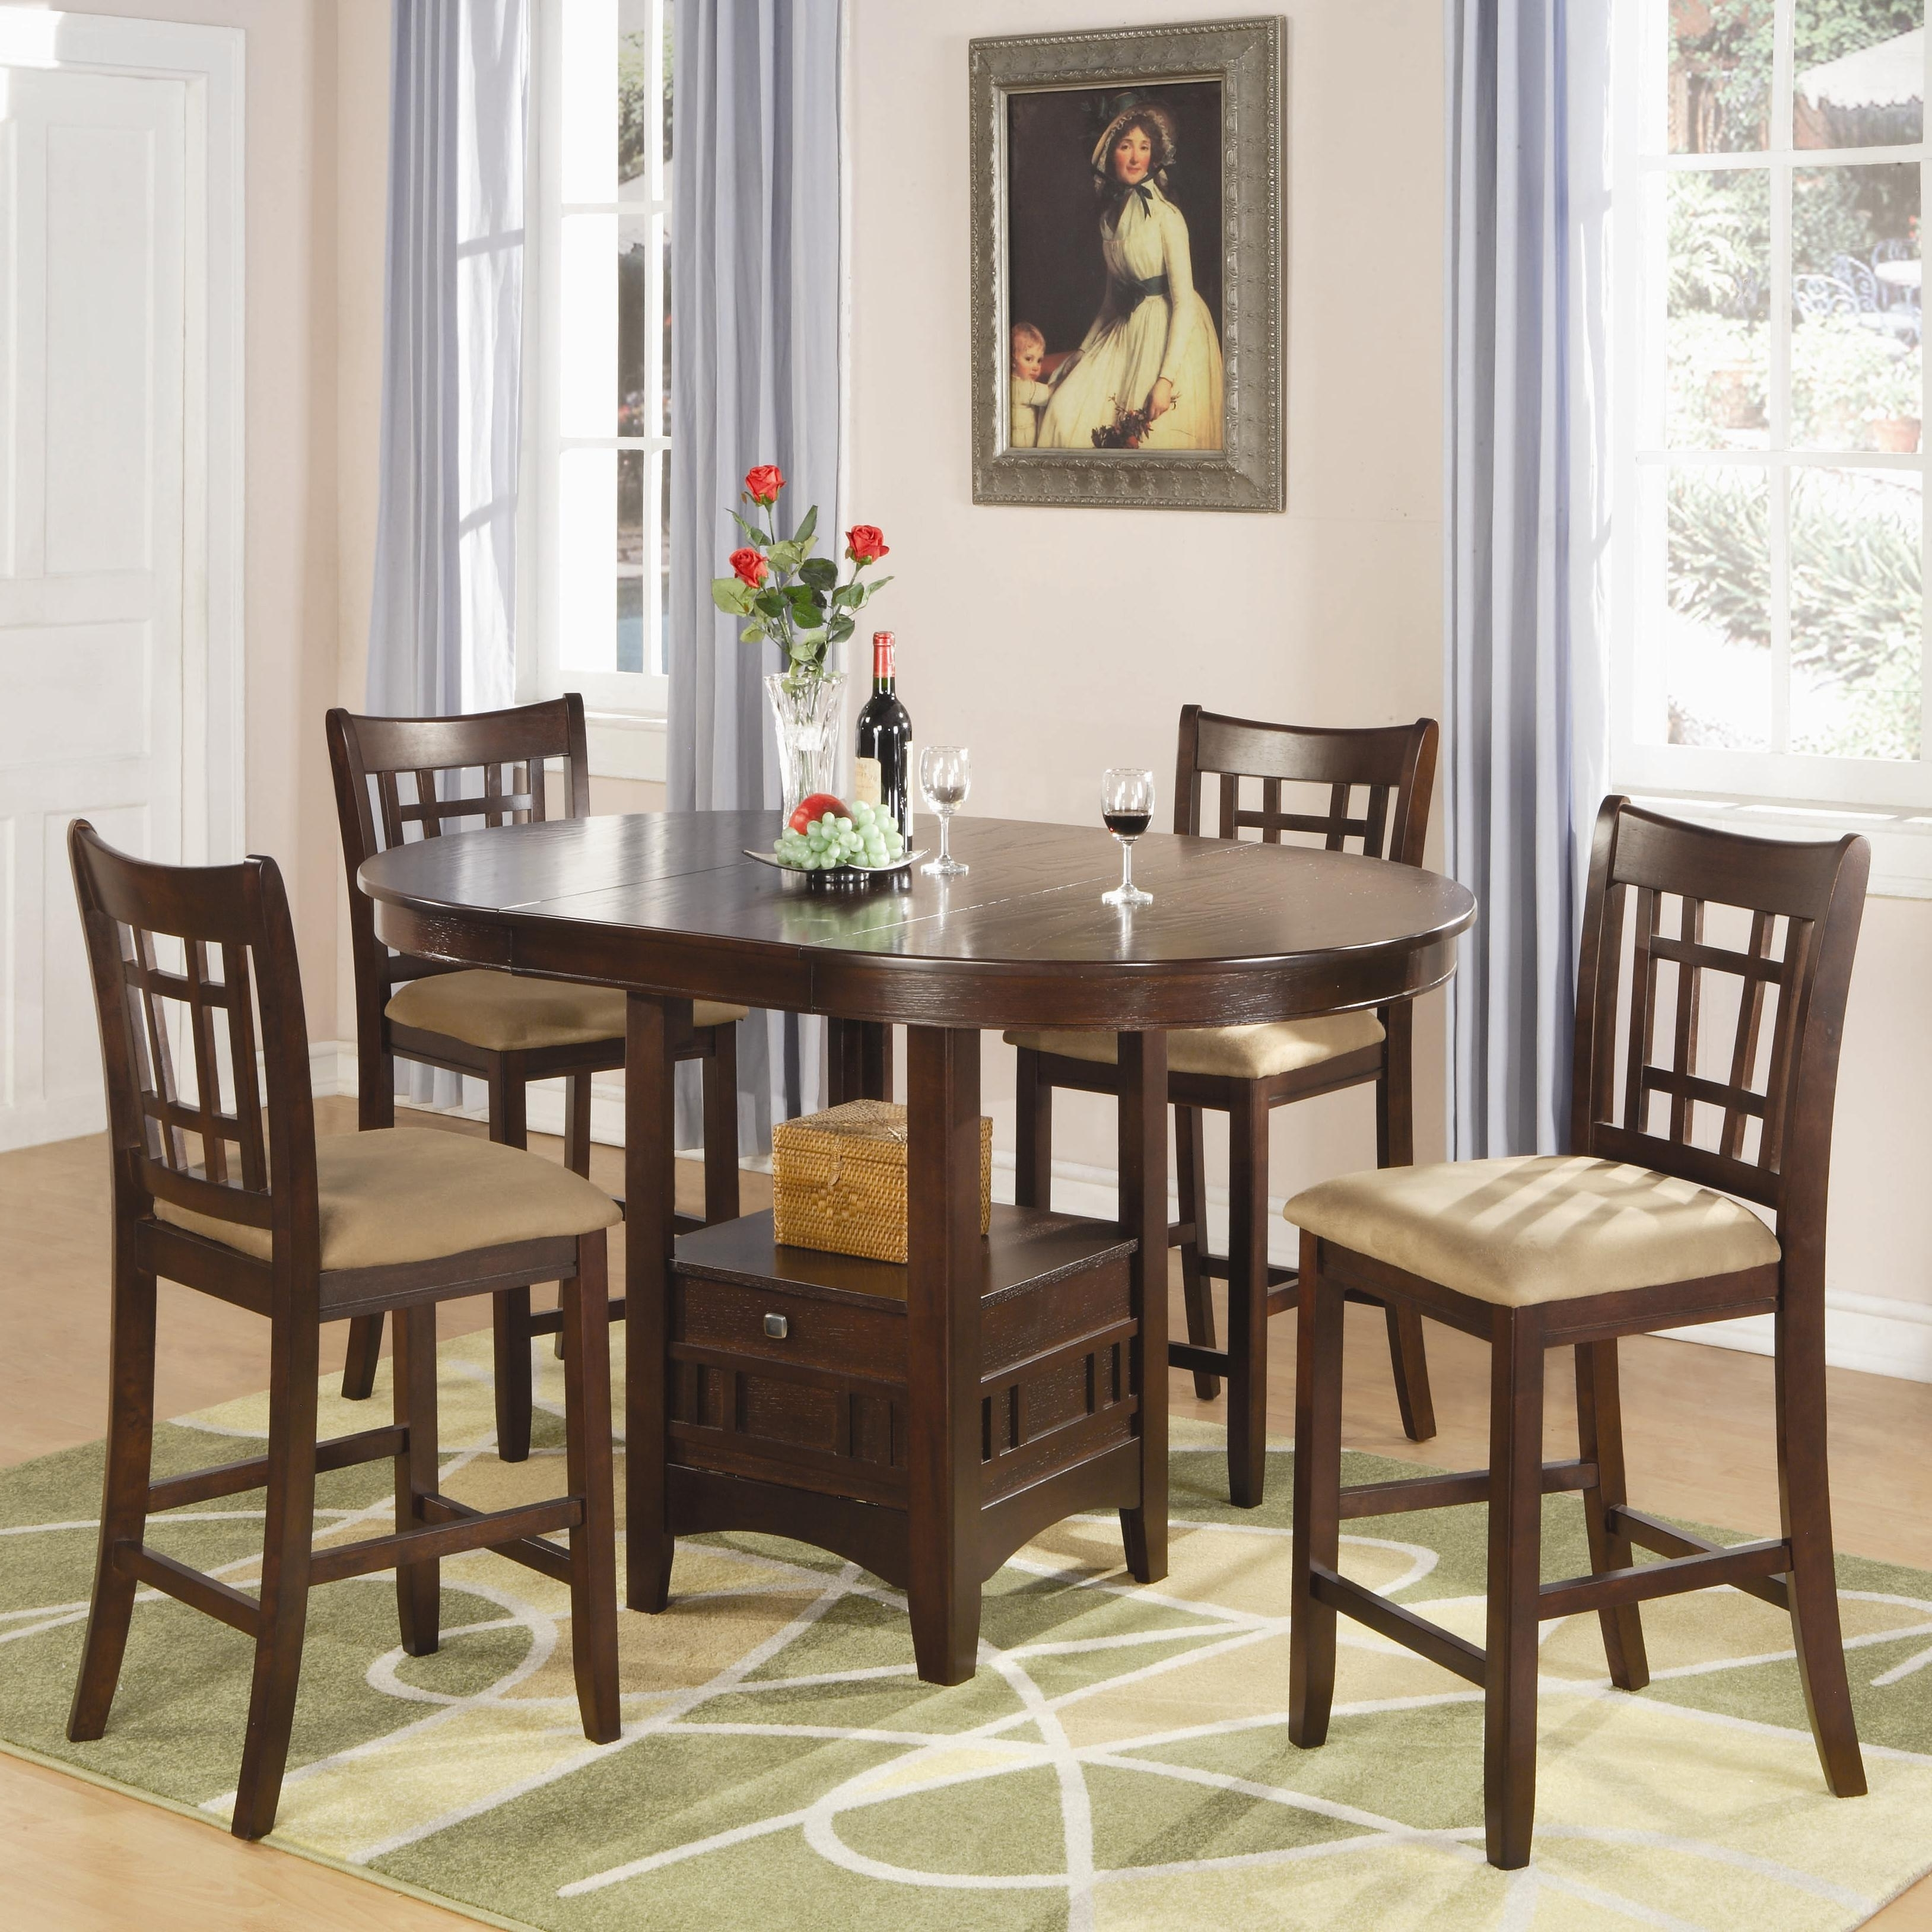 Widely Used Coaster – Find A Local Furniture Store With Coaster Fine Furniture Regarding Craftsman 9 Piece Extension Dining Sets (View 25 of 25)